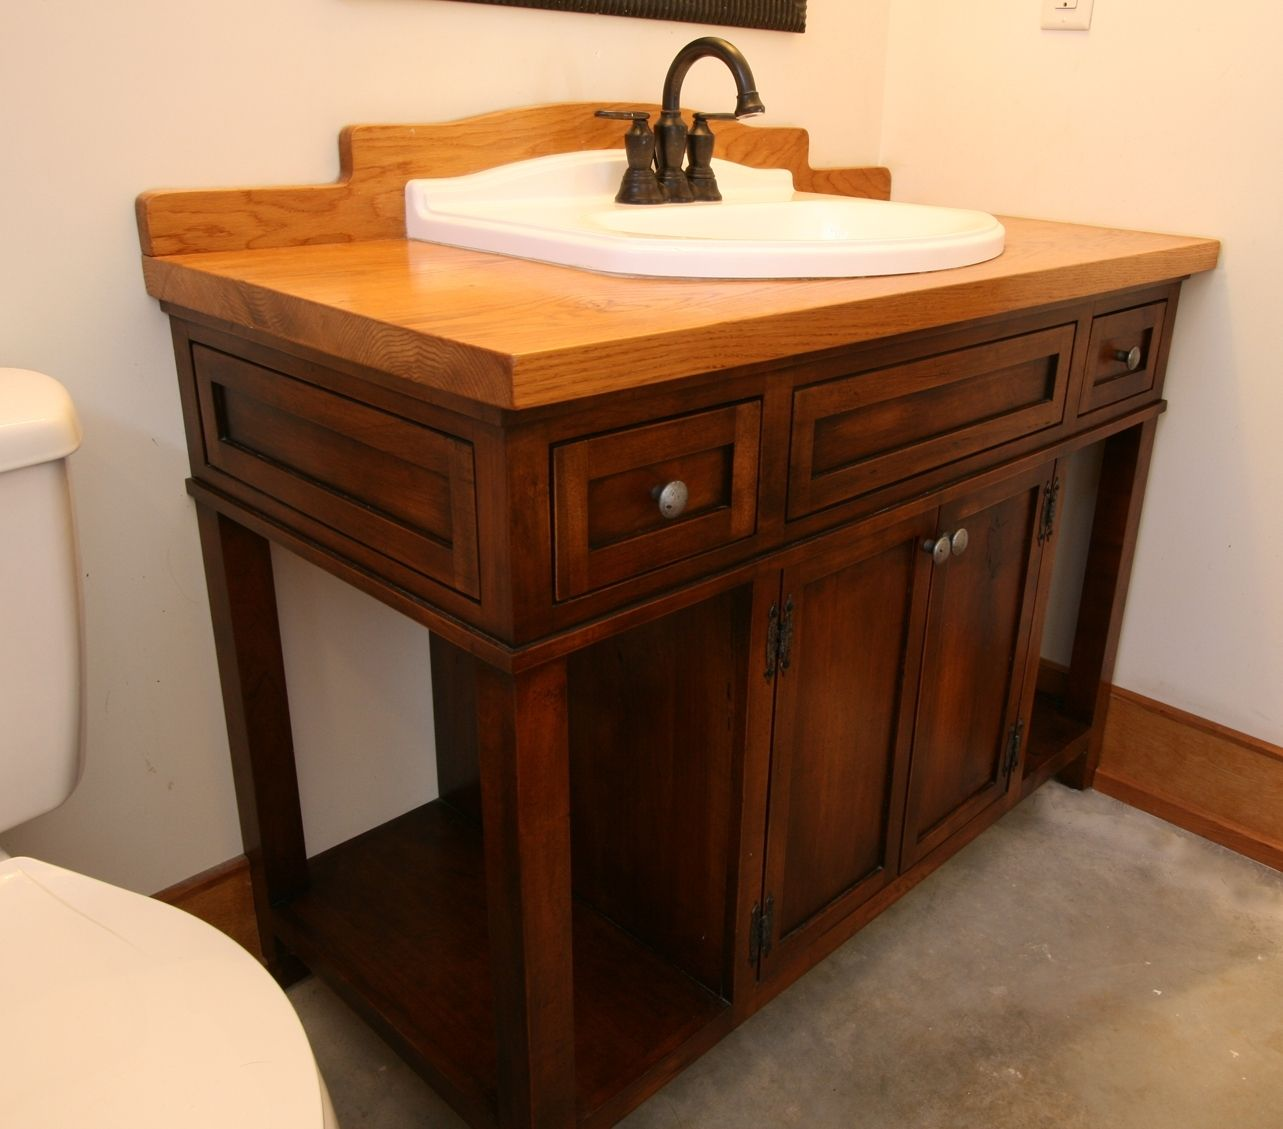 Hand Crafted Custom Wood Bath Vanity With Reclaimed Sink by MOSS Farm Designs  CustomMadecom